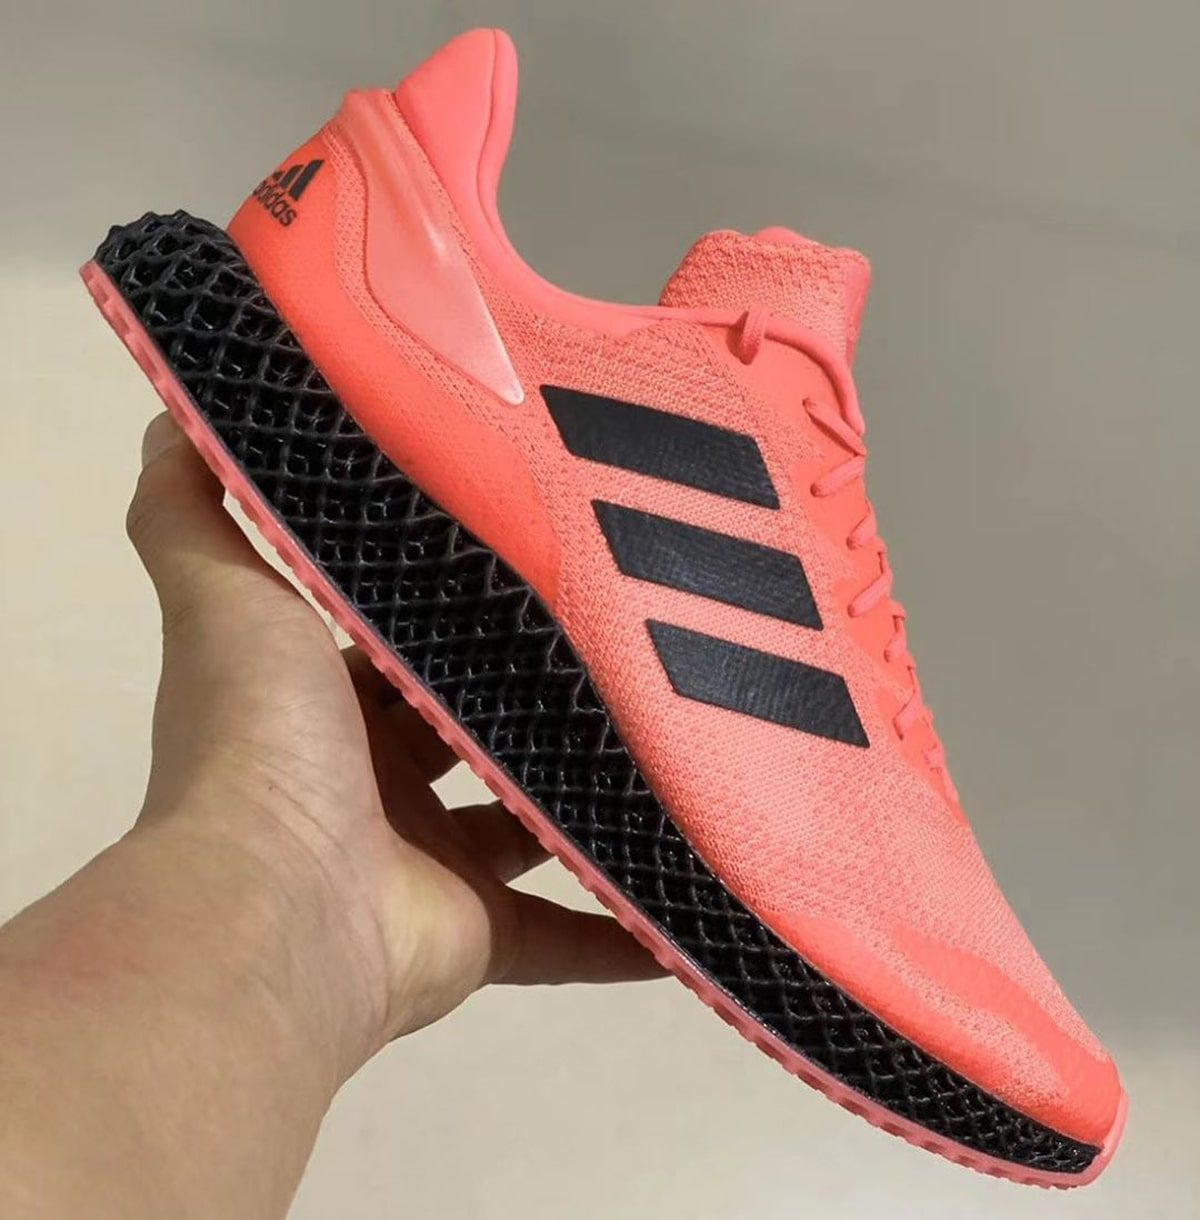 adidas 4D Futurcraft Finally Surfaces in Black